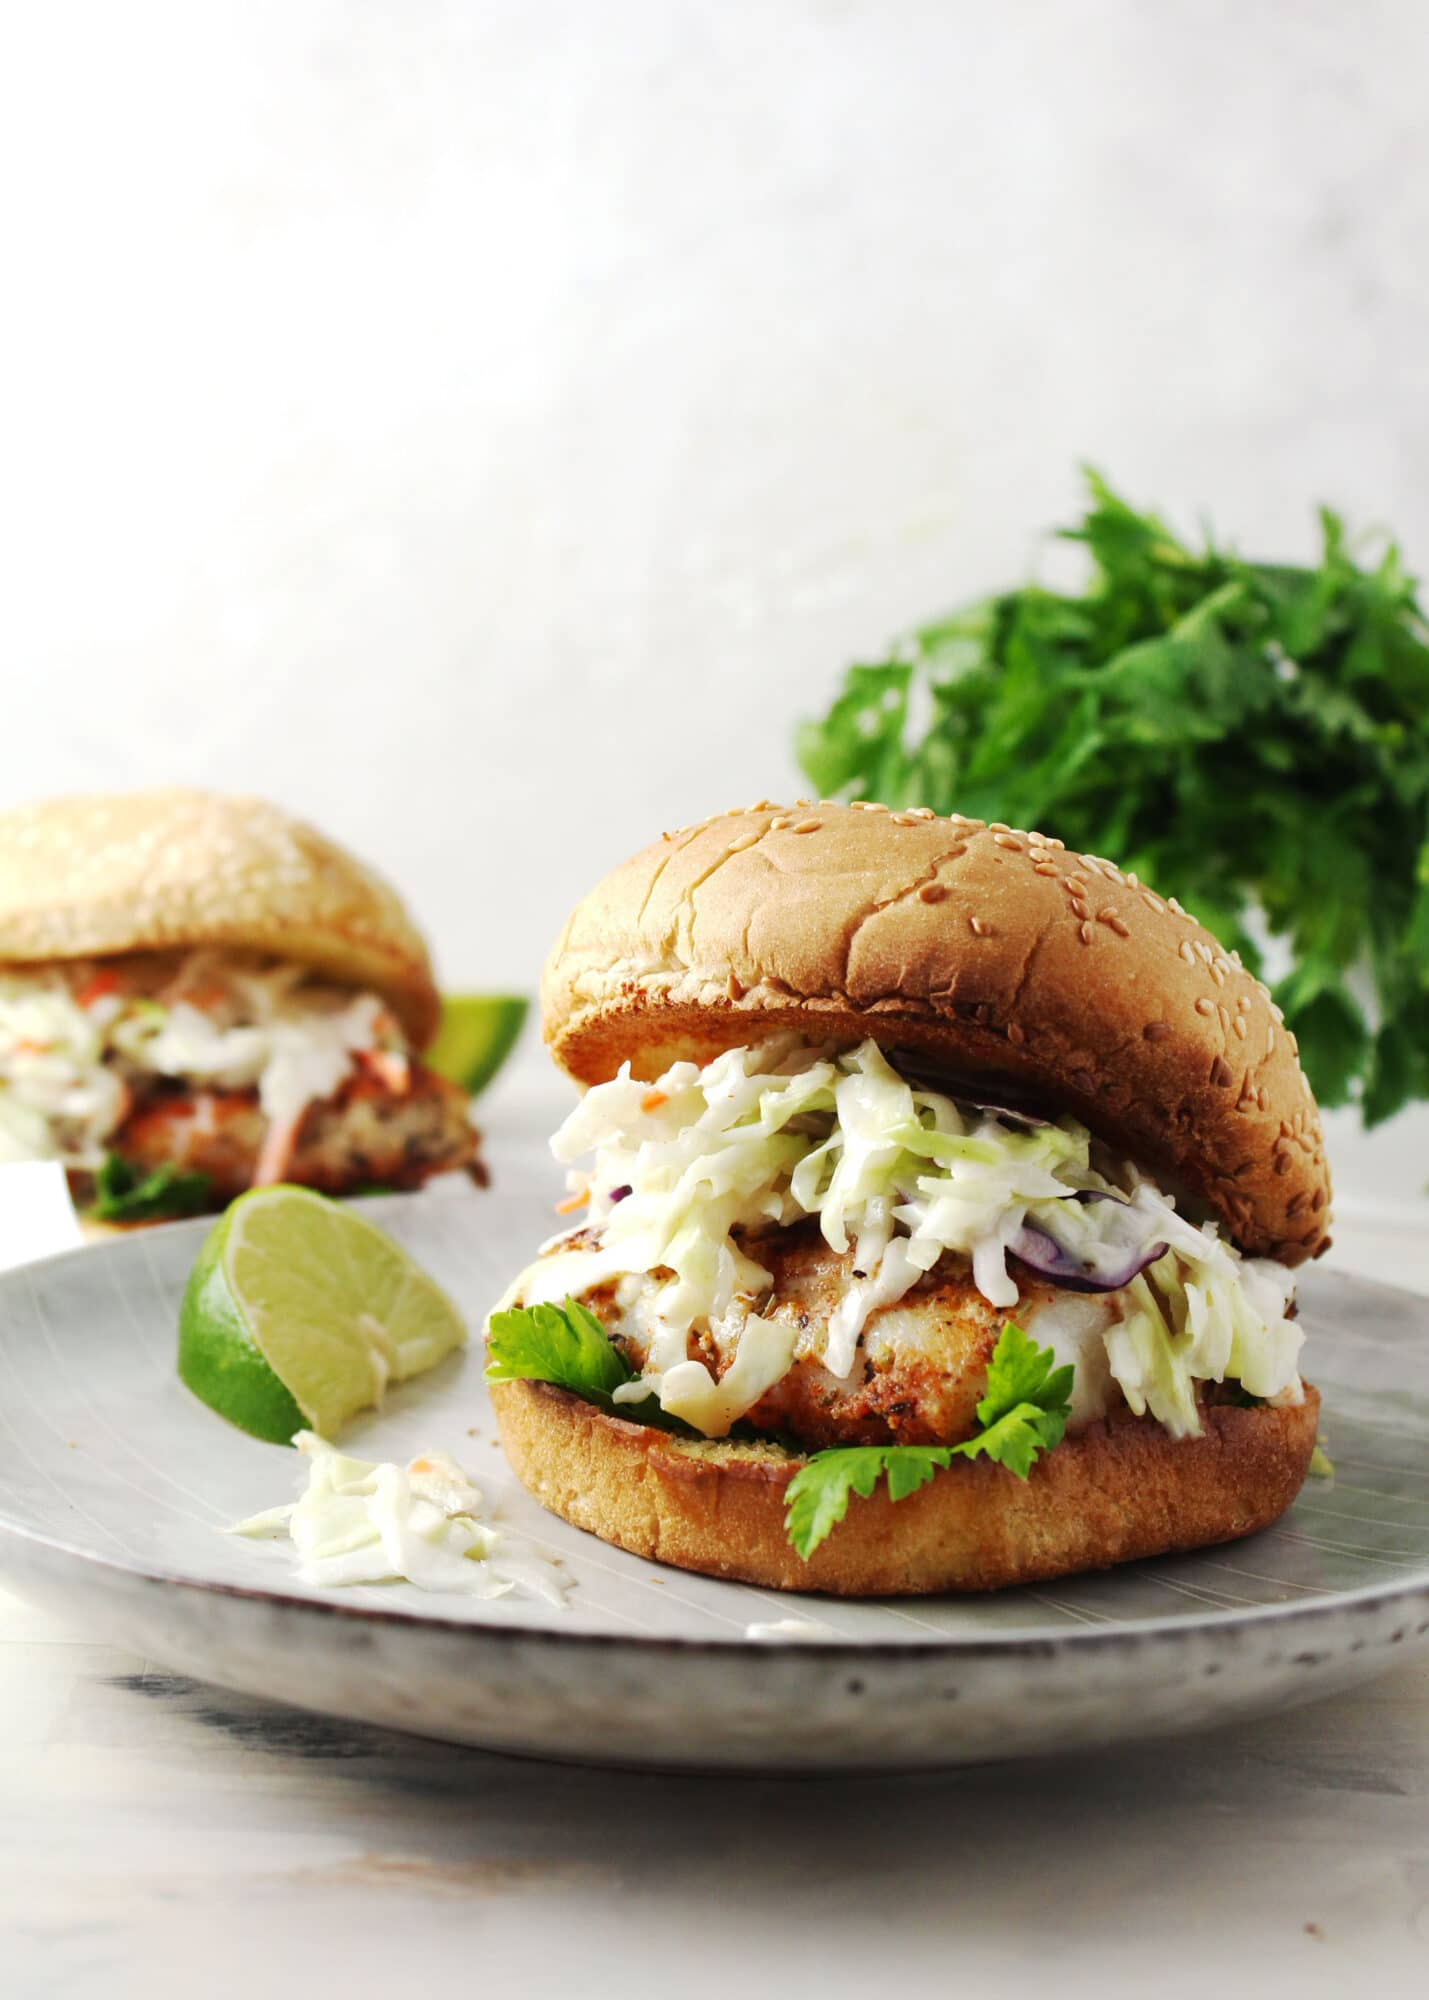 blackened fish sandwich topped with coleslaw on gray plate